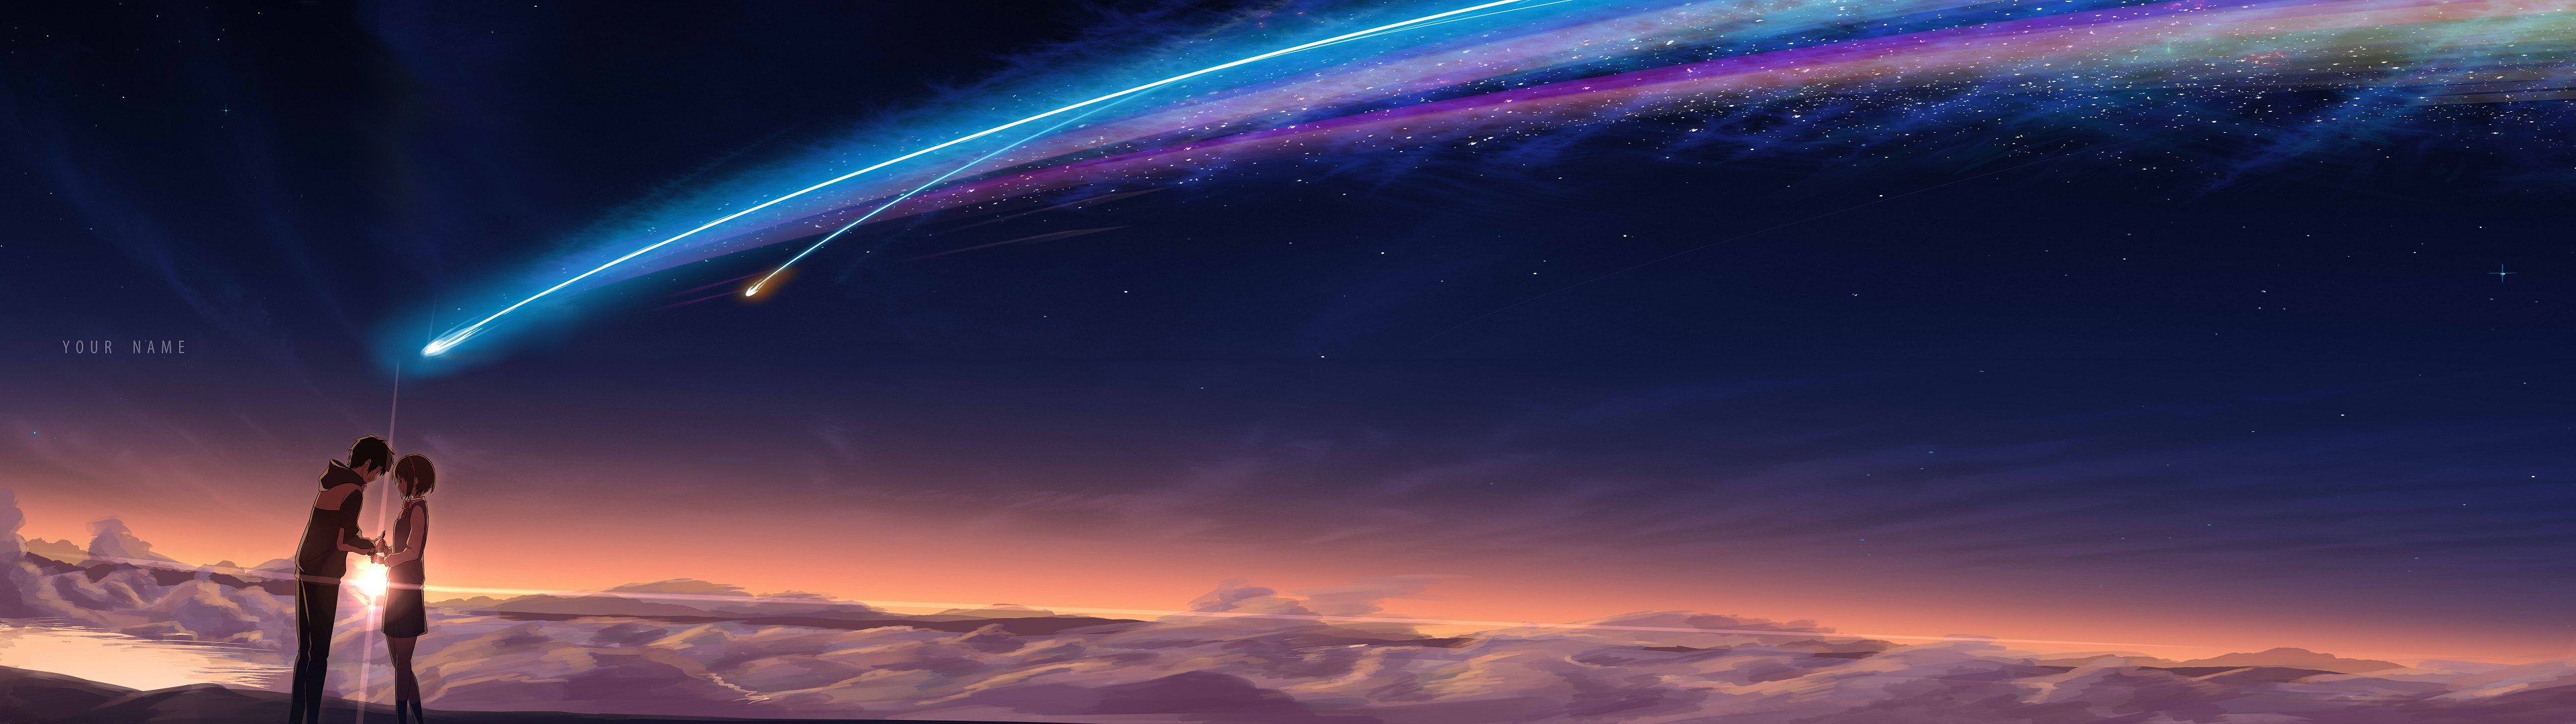 [3840×1080] Kimi no na wa. Your Name. Hastily done dual monitor edit of a  widely available wallpaper.Dual …